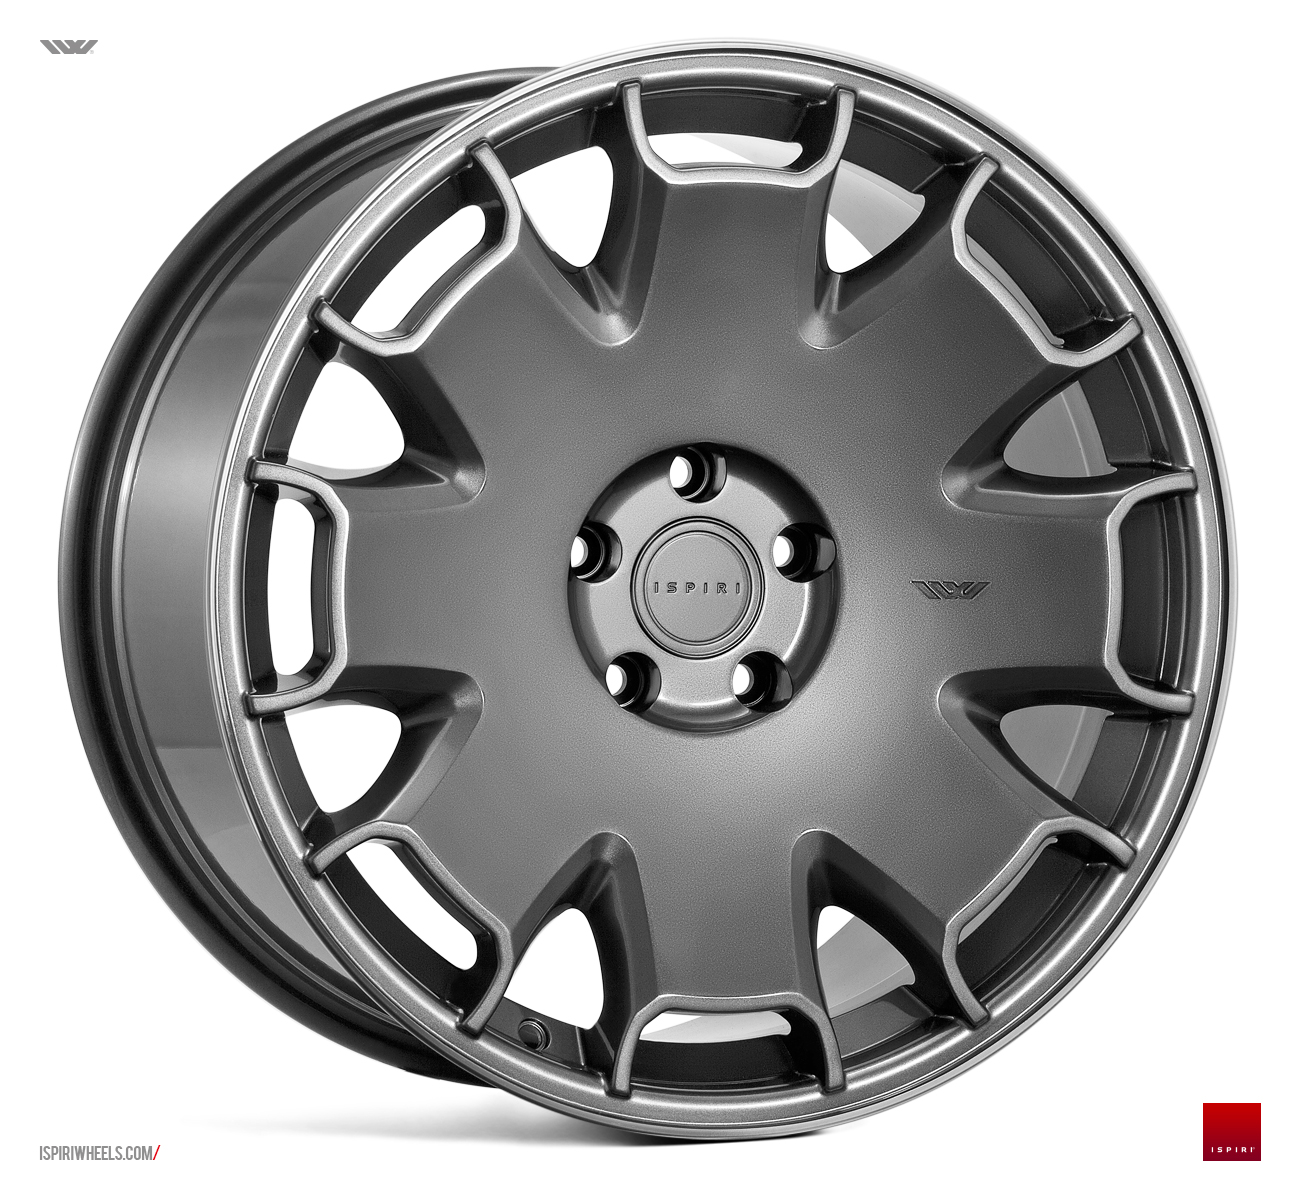 "NEW 19"" ISPIRI CSR2 ALLOY WHEELS IN CARBON GRAPHITE WITH POLISHED LIP et32 or et42/42"